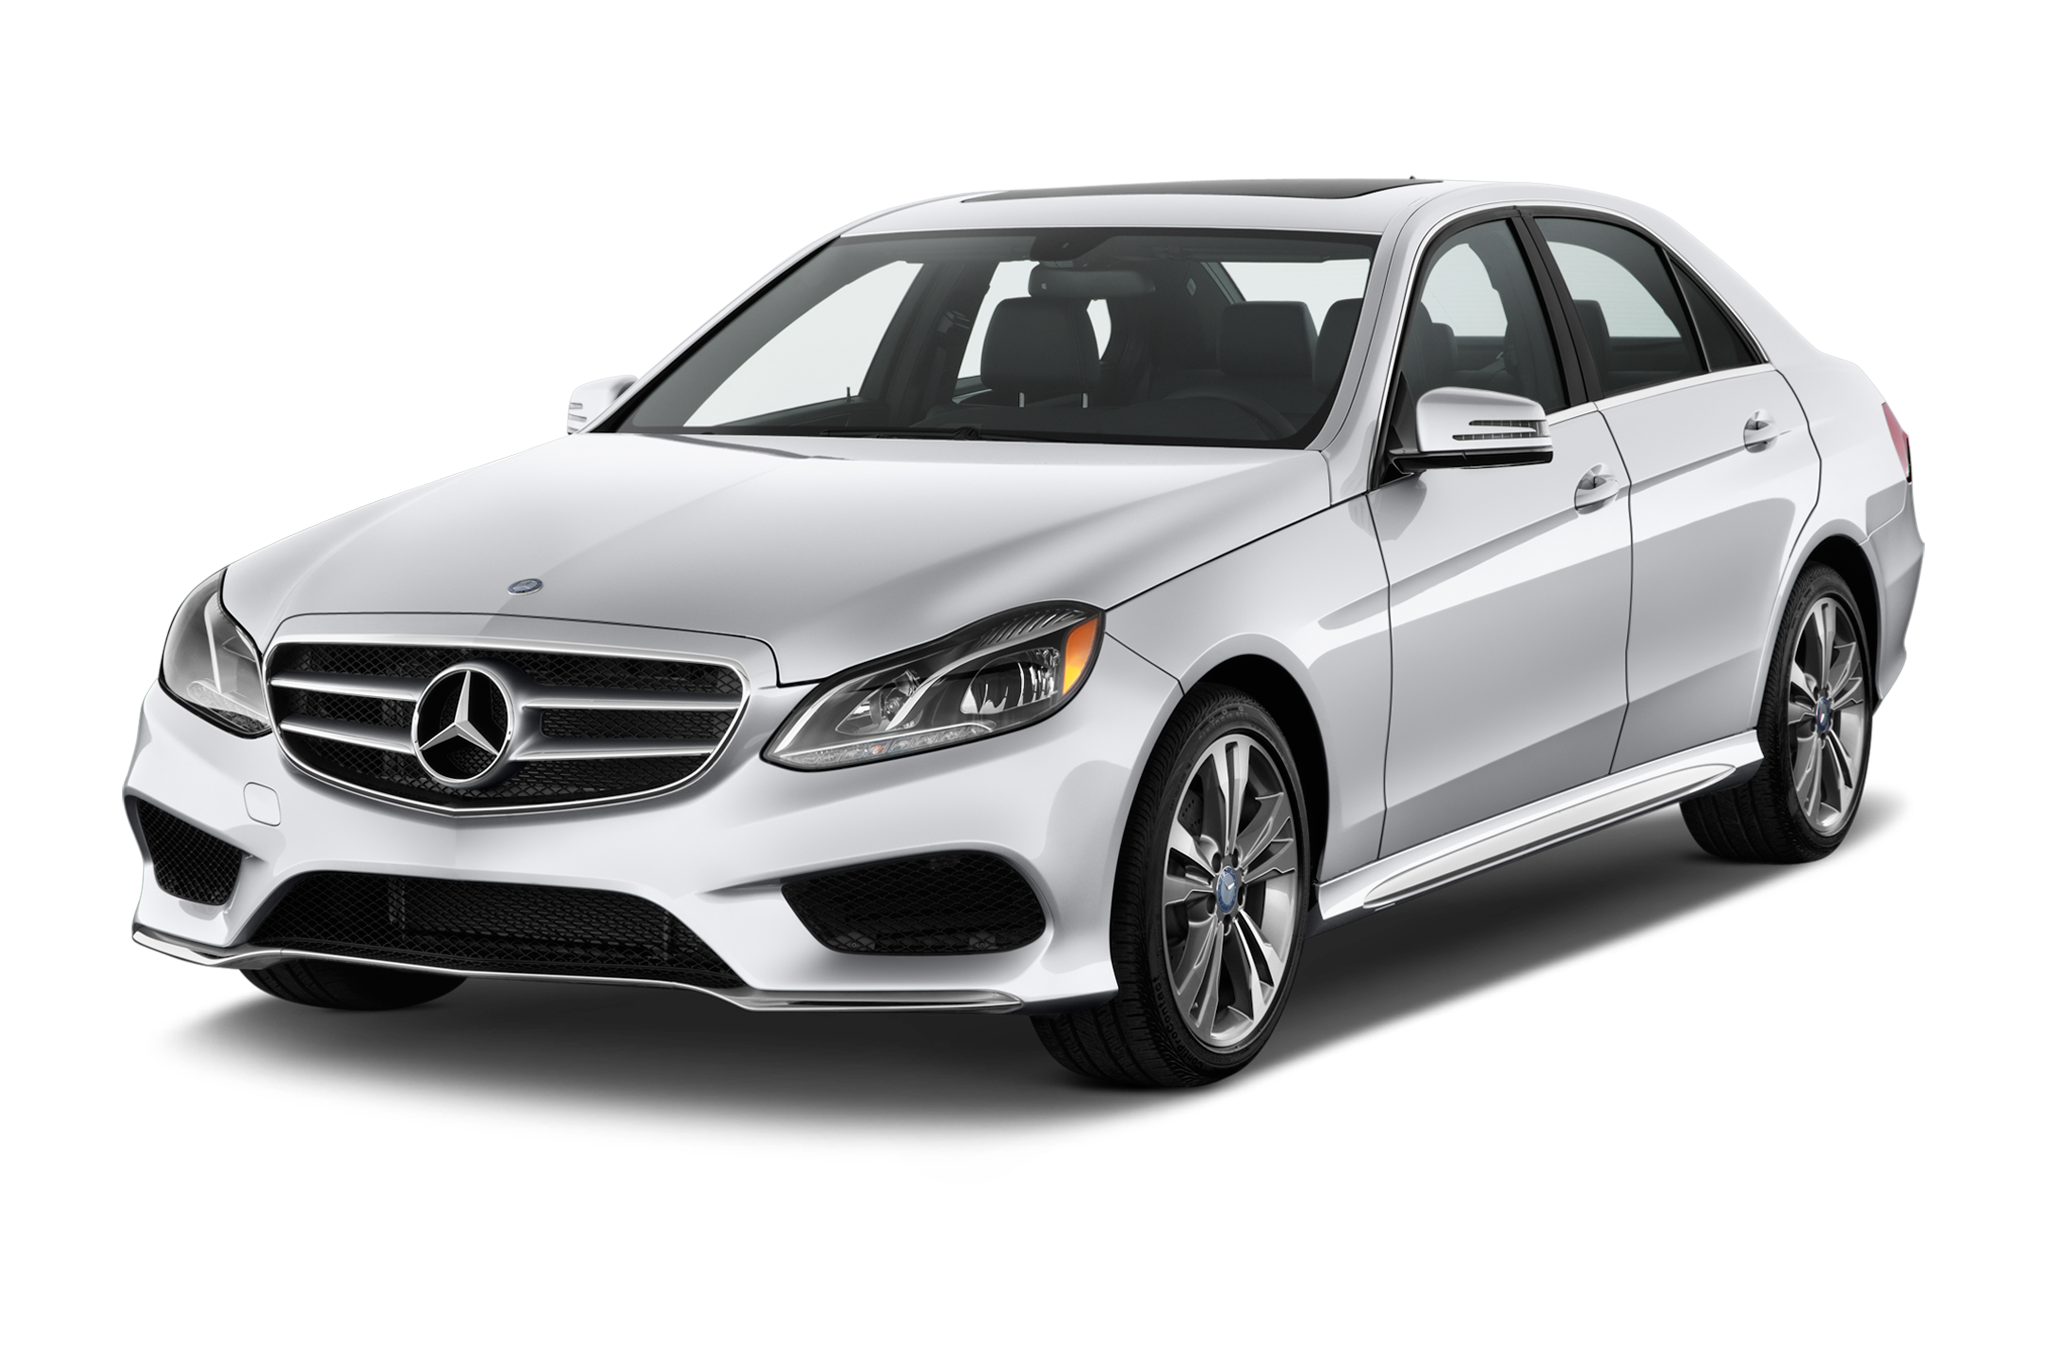 2016 Mercedes-Benz E-Class Reviews and Rating | Motor Trend